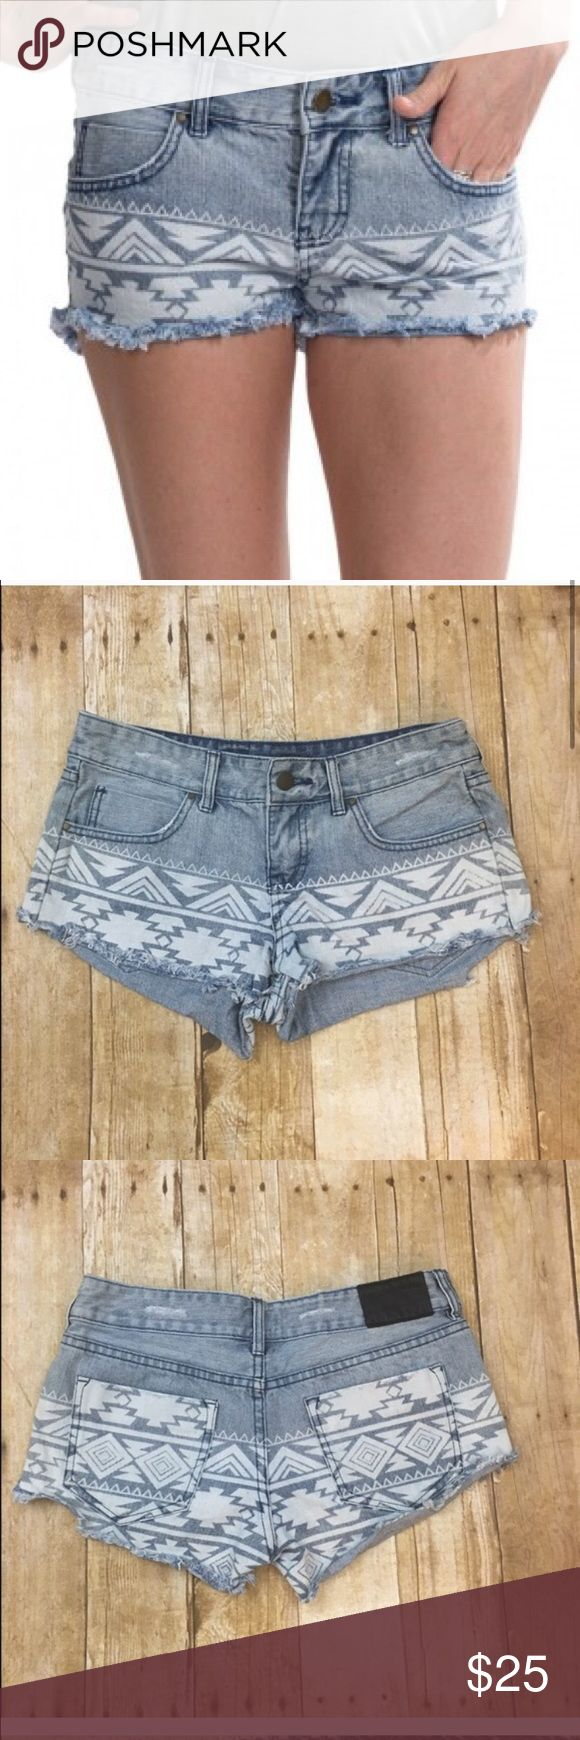 """Billabong denim Aztec shorts Adorable denim super short shorts with a Aztec pattern along bottom. 8"""" in length with a 2"""" inseam- shorty shorts! Wear year round paired with cute tights! Billabong Shorts Jean Shorts"""